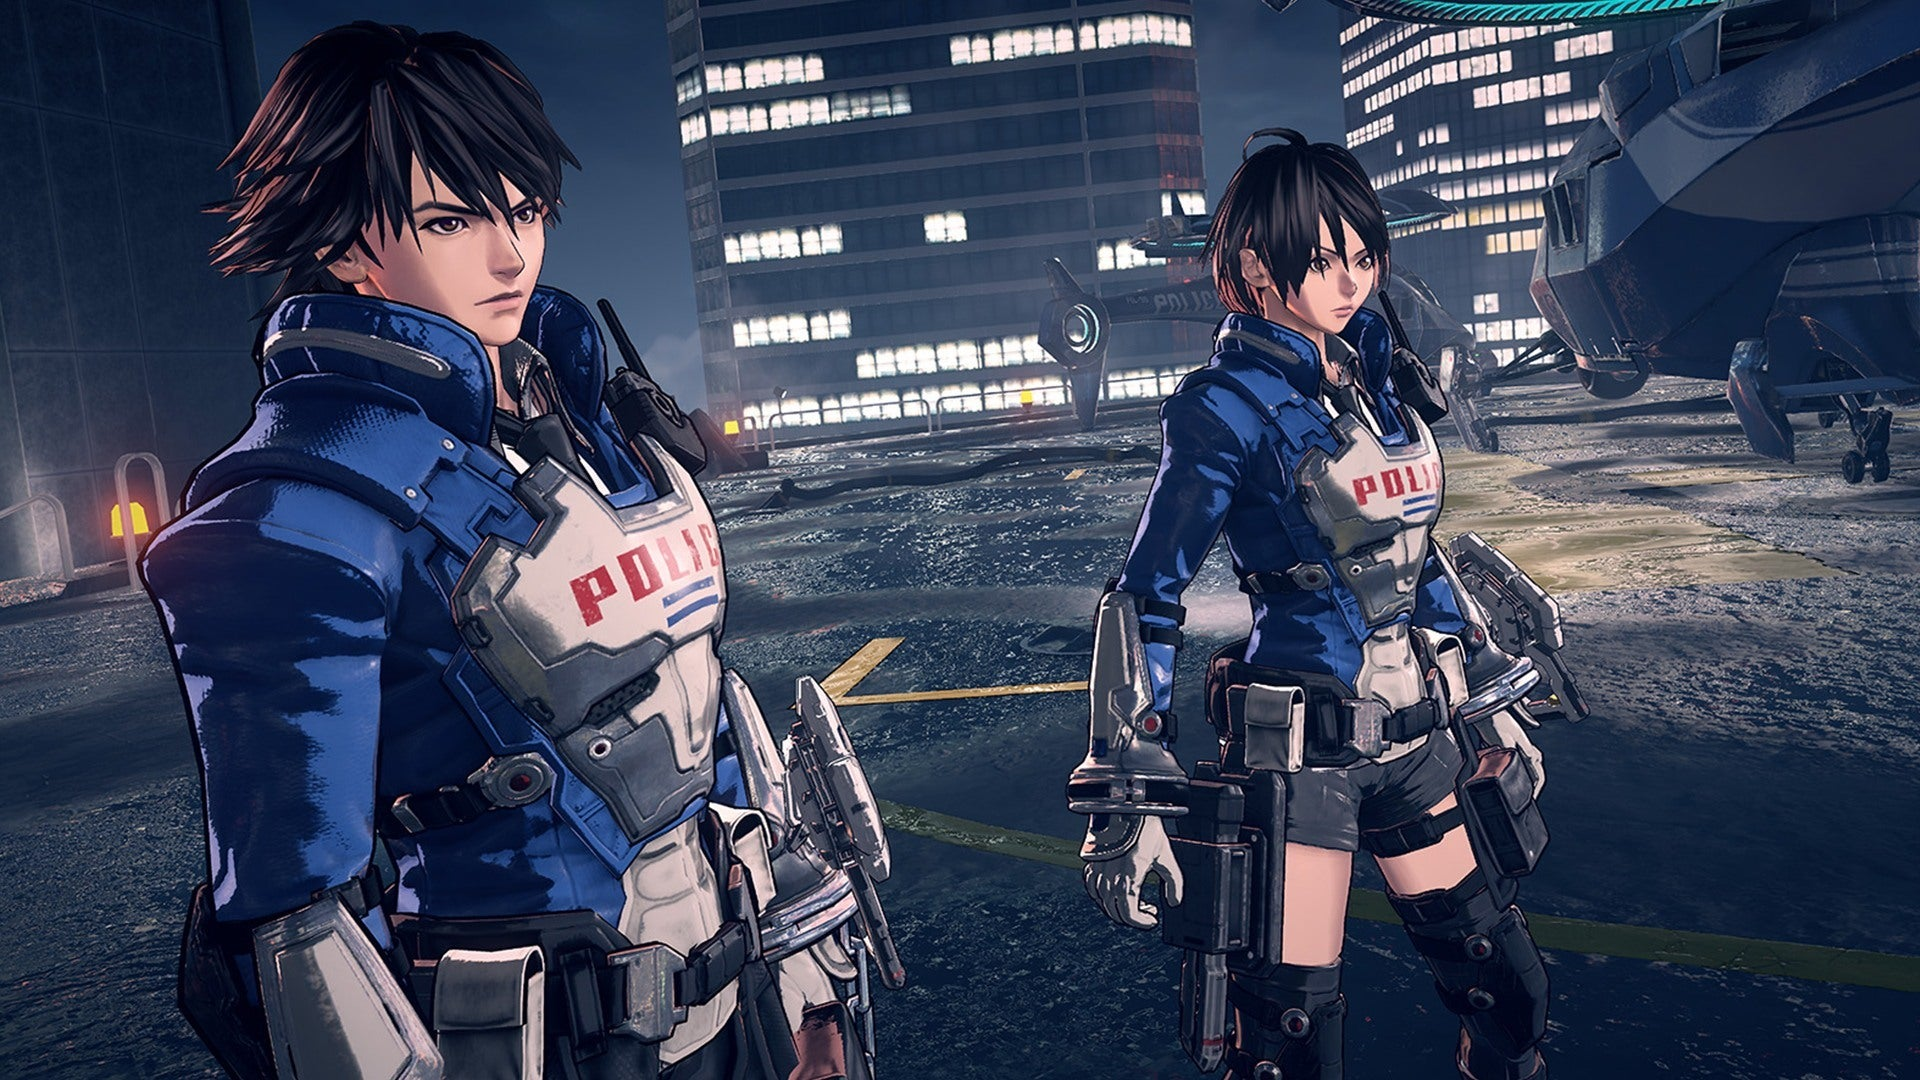 Aug. 2019 NPD - Switch #1 hardware, Astral Chain makes top 10 with just 2 days of sales